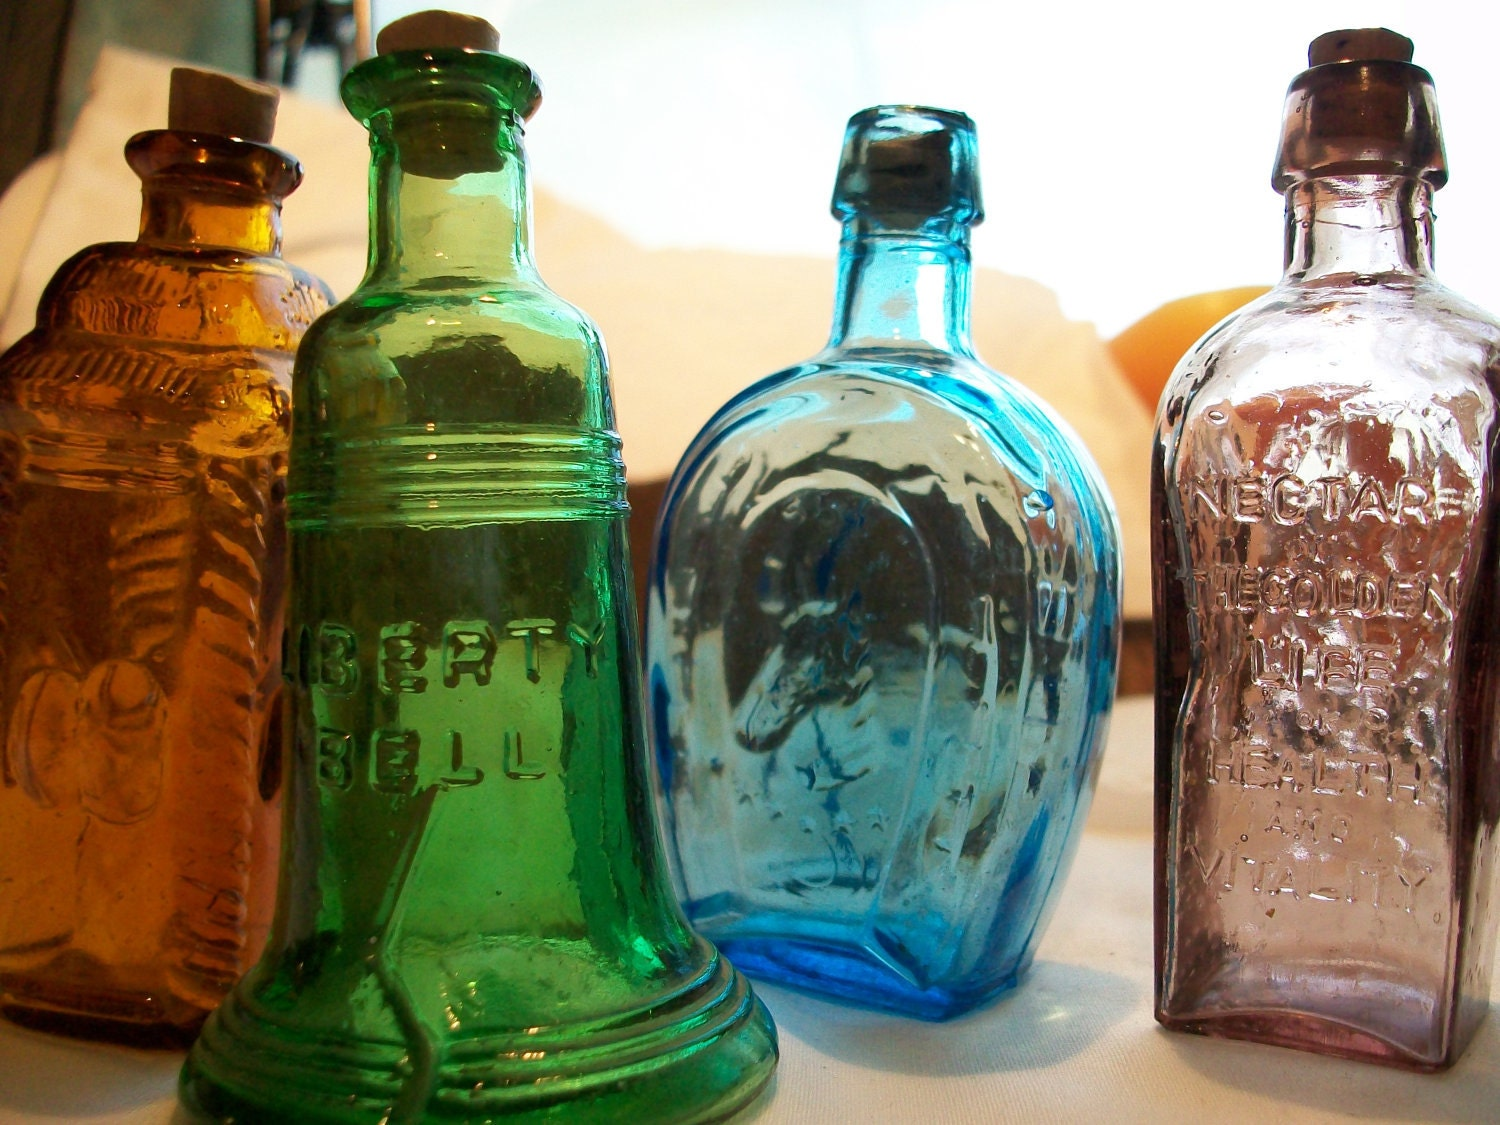 Darling Coloful Mini Bottles for Home Decor or Other Decorative Purposes  Vintage Bottles  Old Glass